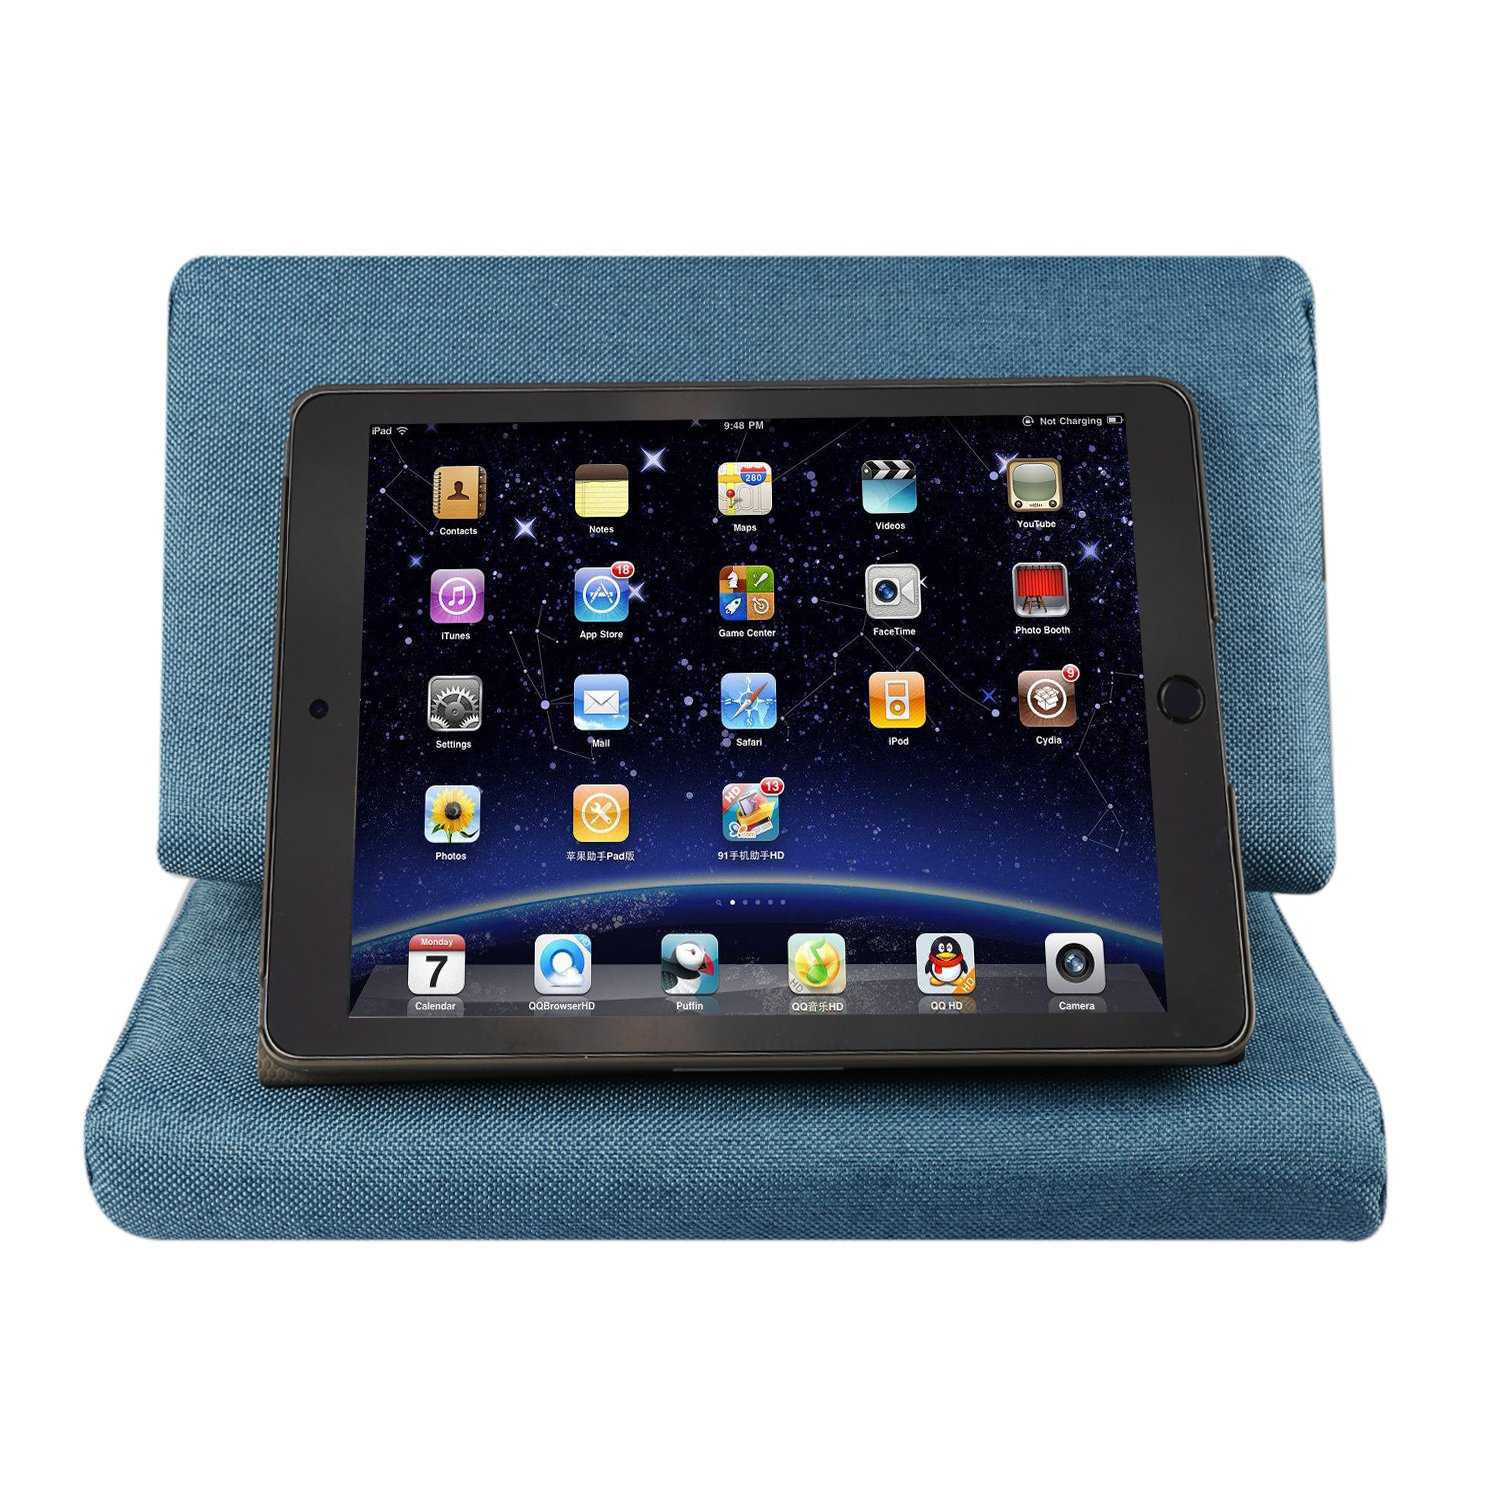 eworld tablet pillow holder ipad pillow tablet stand sofa book rest support reading wedge